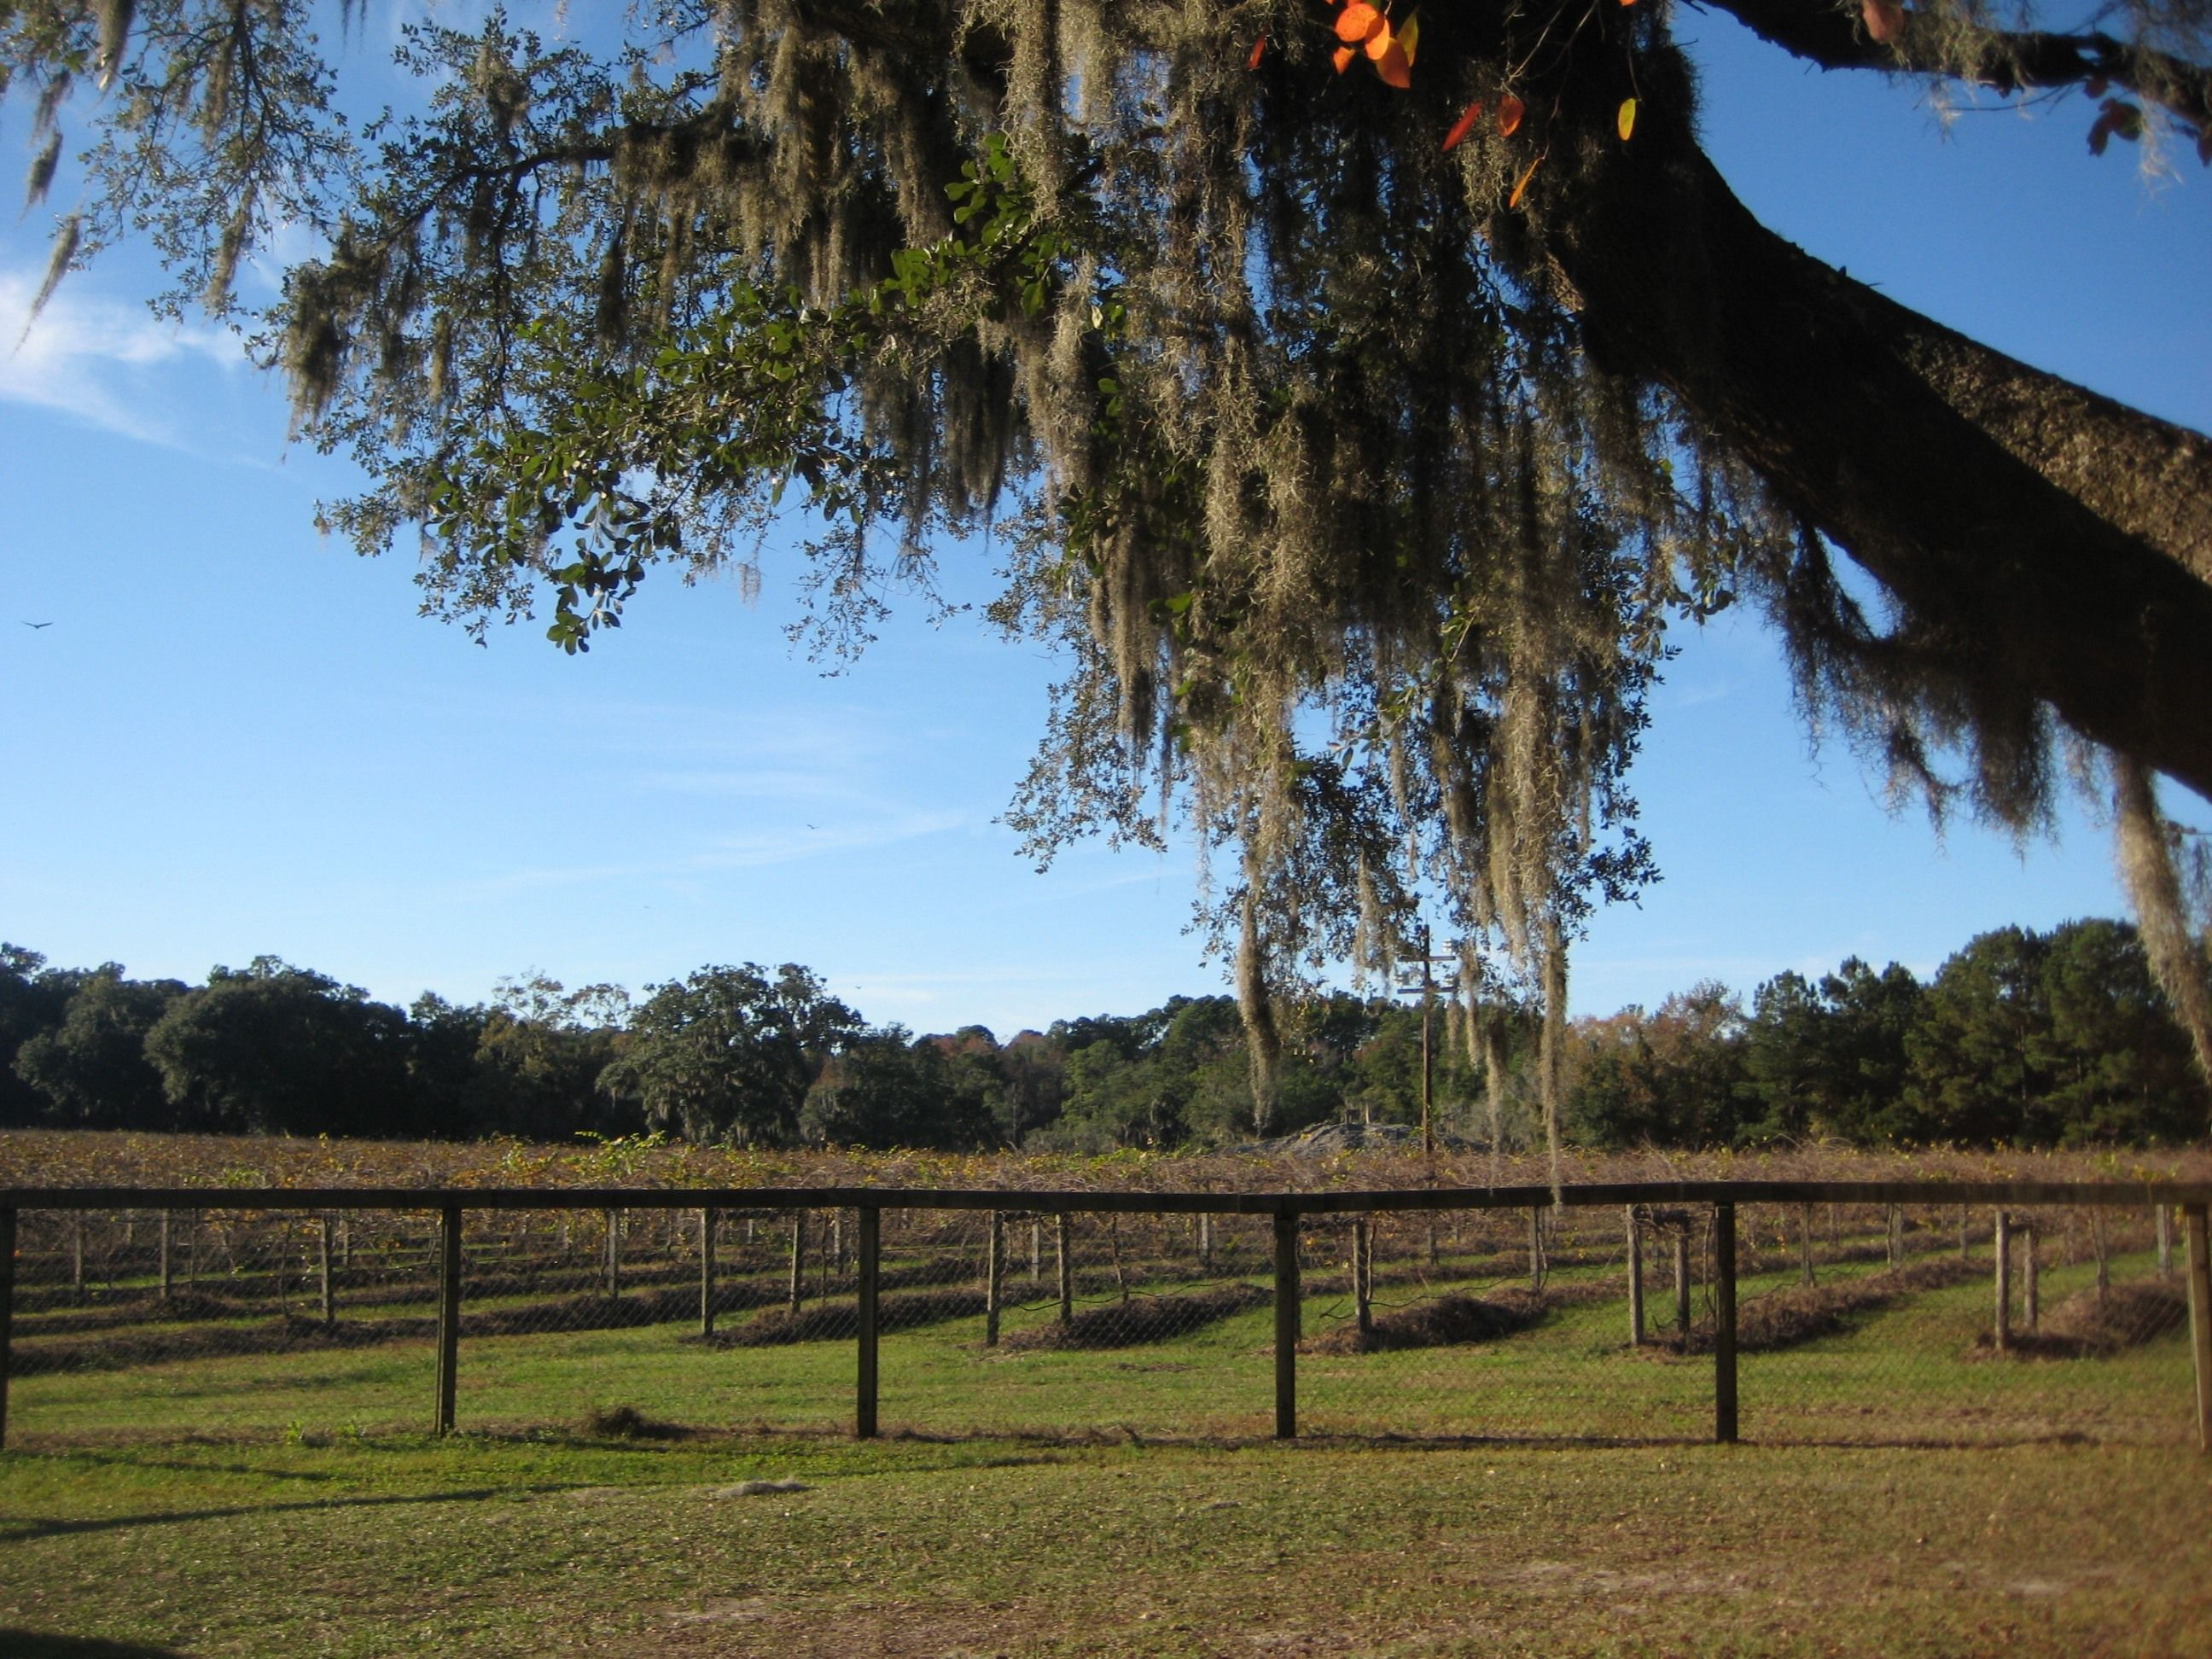 What Blessing Of The Vines Festival When Saturday November 10 12 00 P M 5 00 P M Admission 10 00 Per Car Where Natural Landmarks Vineyard Island